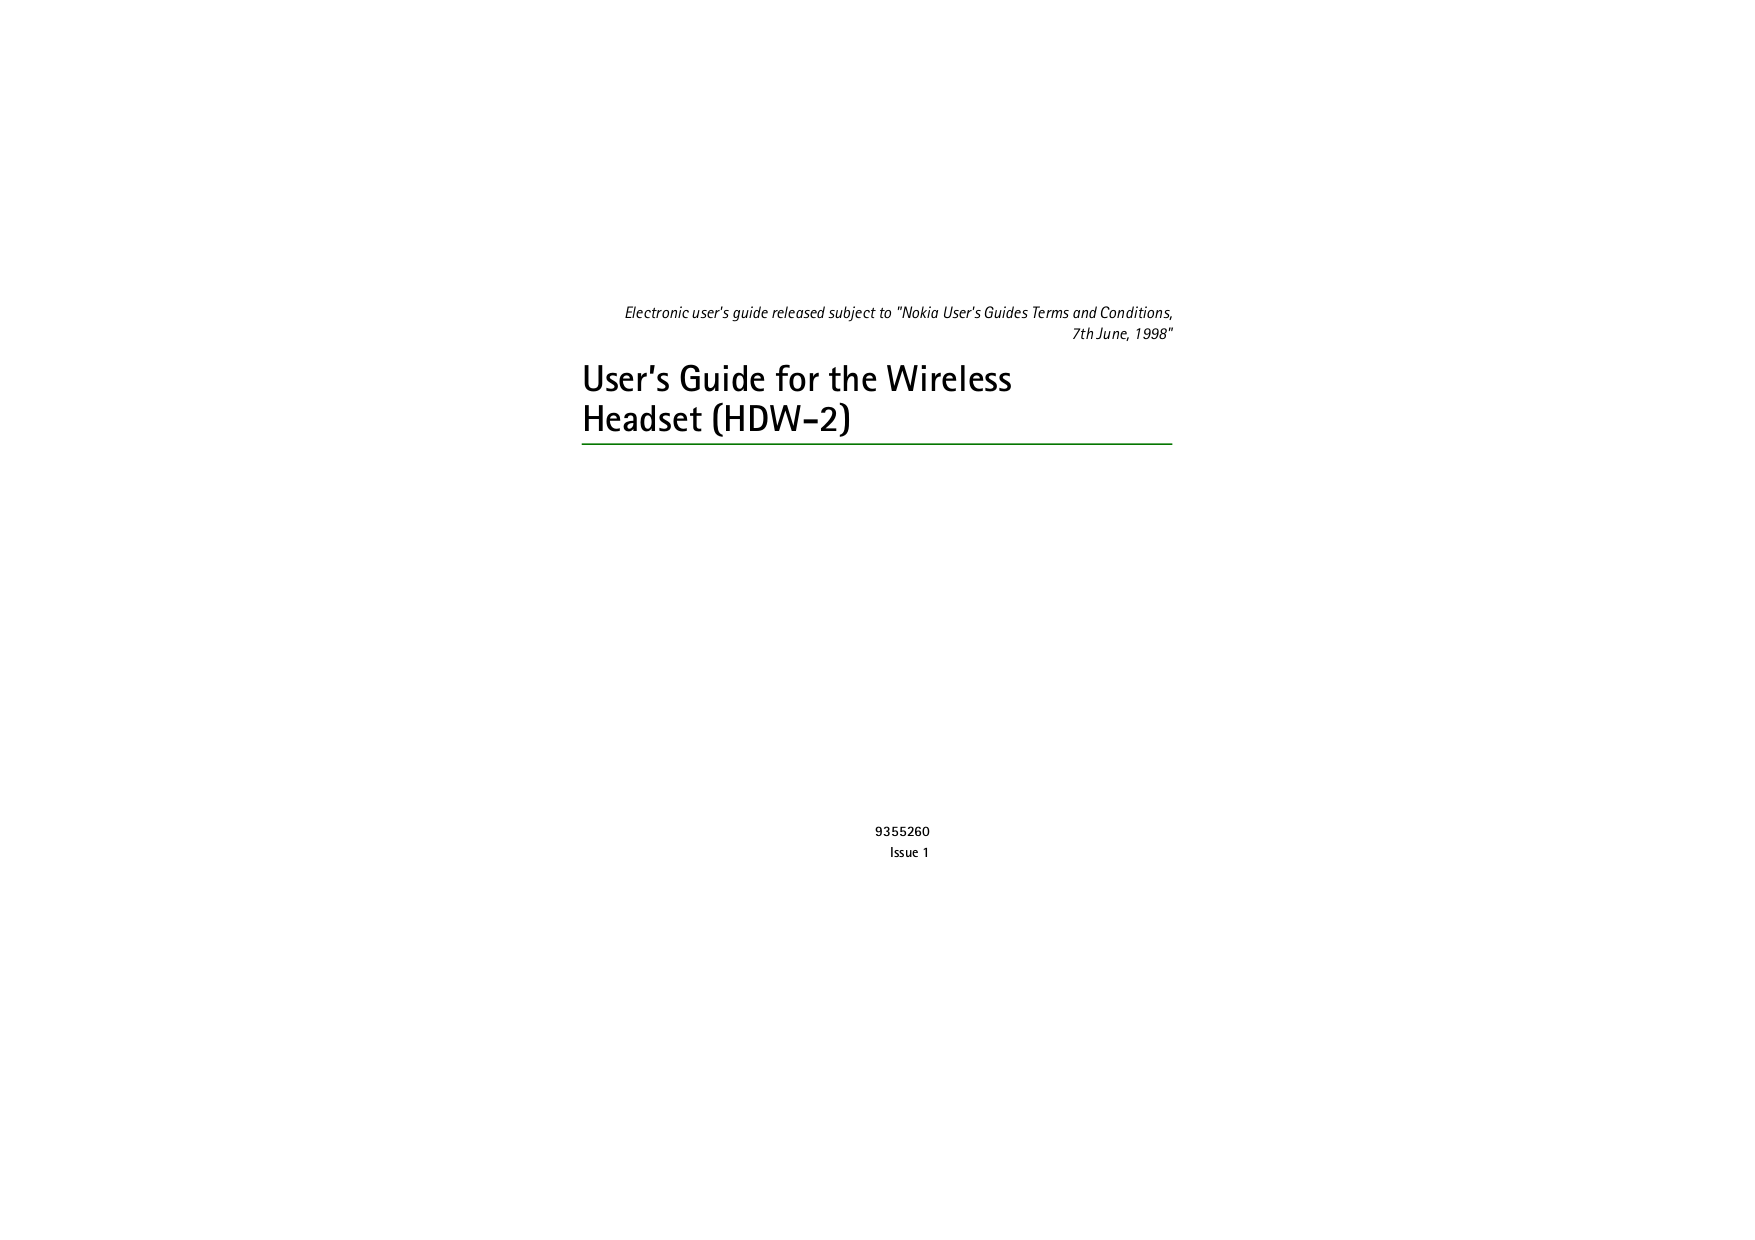 pdf for Nokia Headset HDW-2 manual